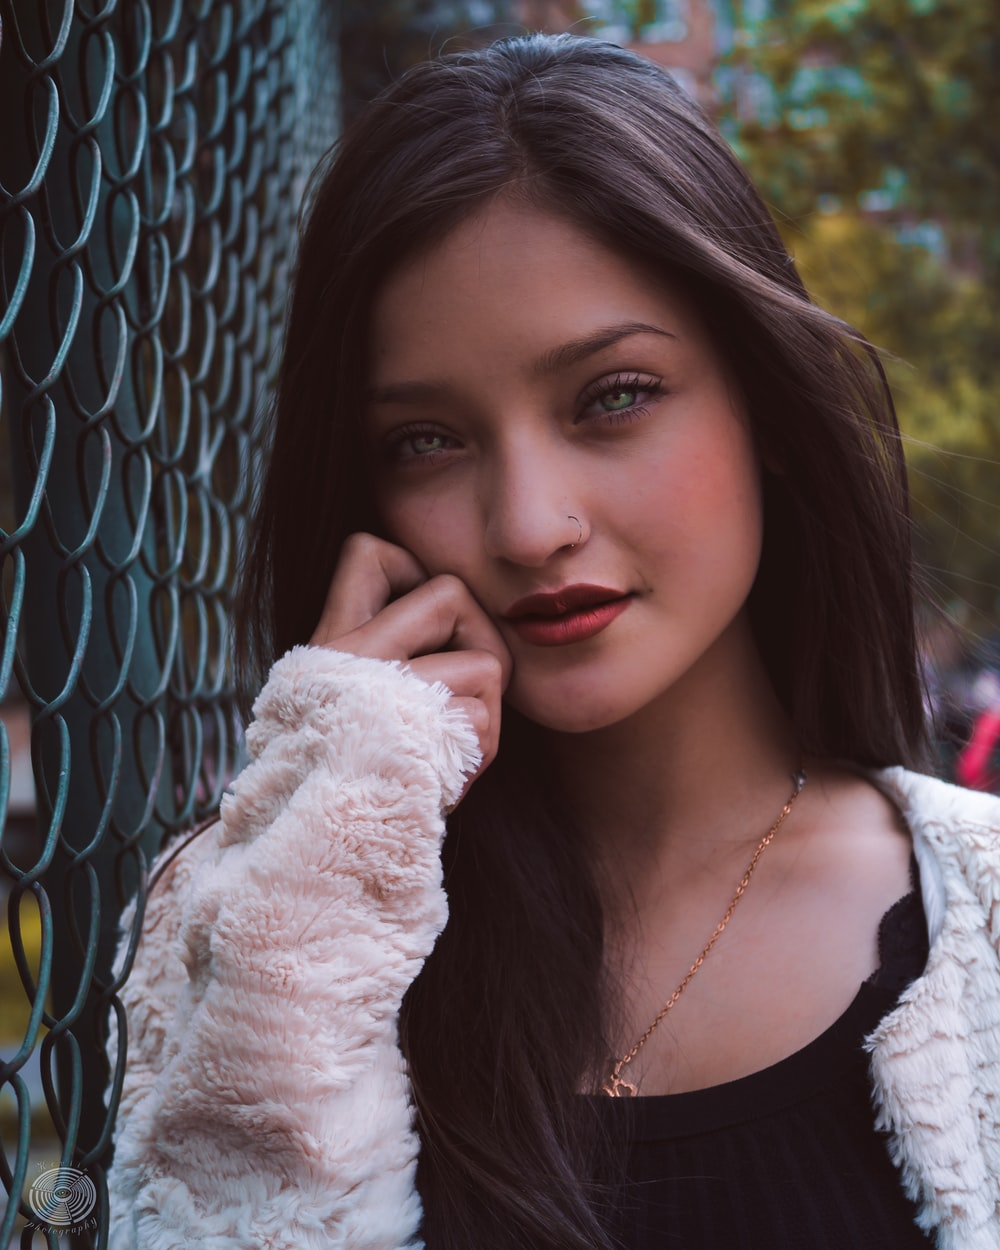 woman leaning on wire fence at daytime